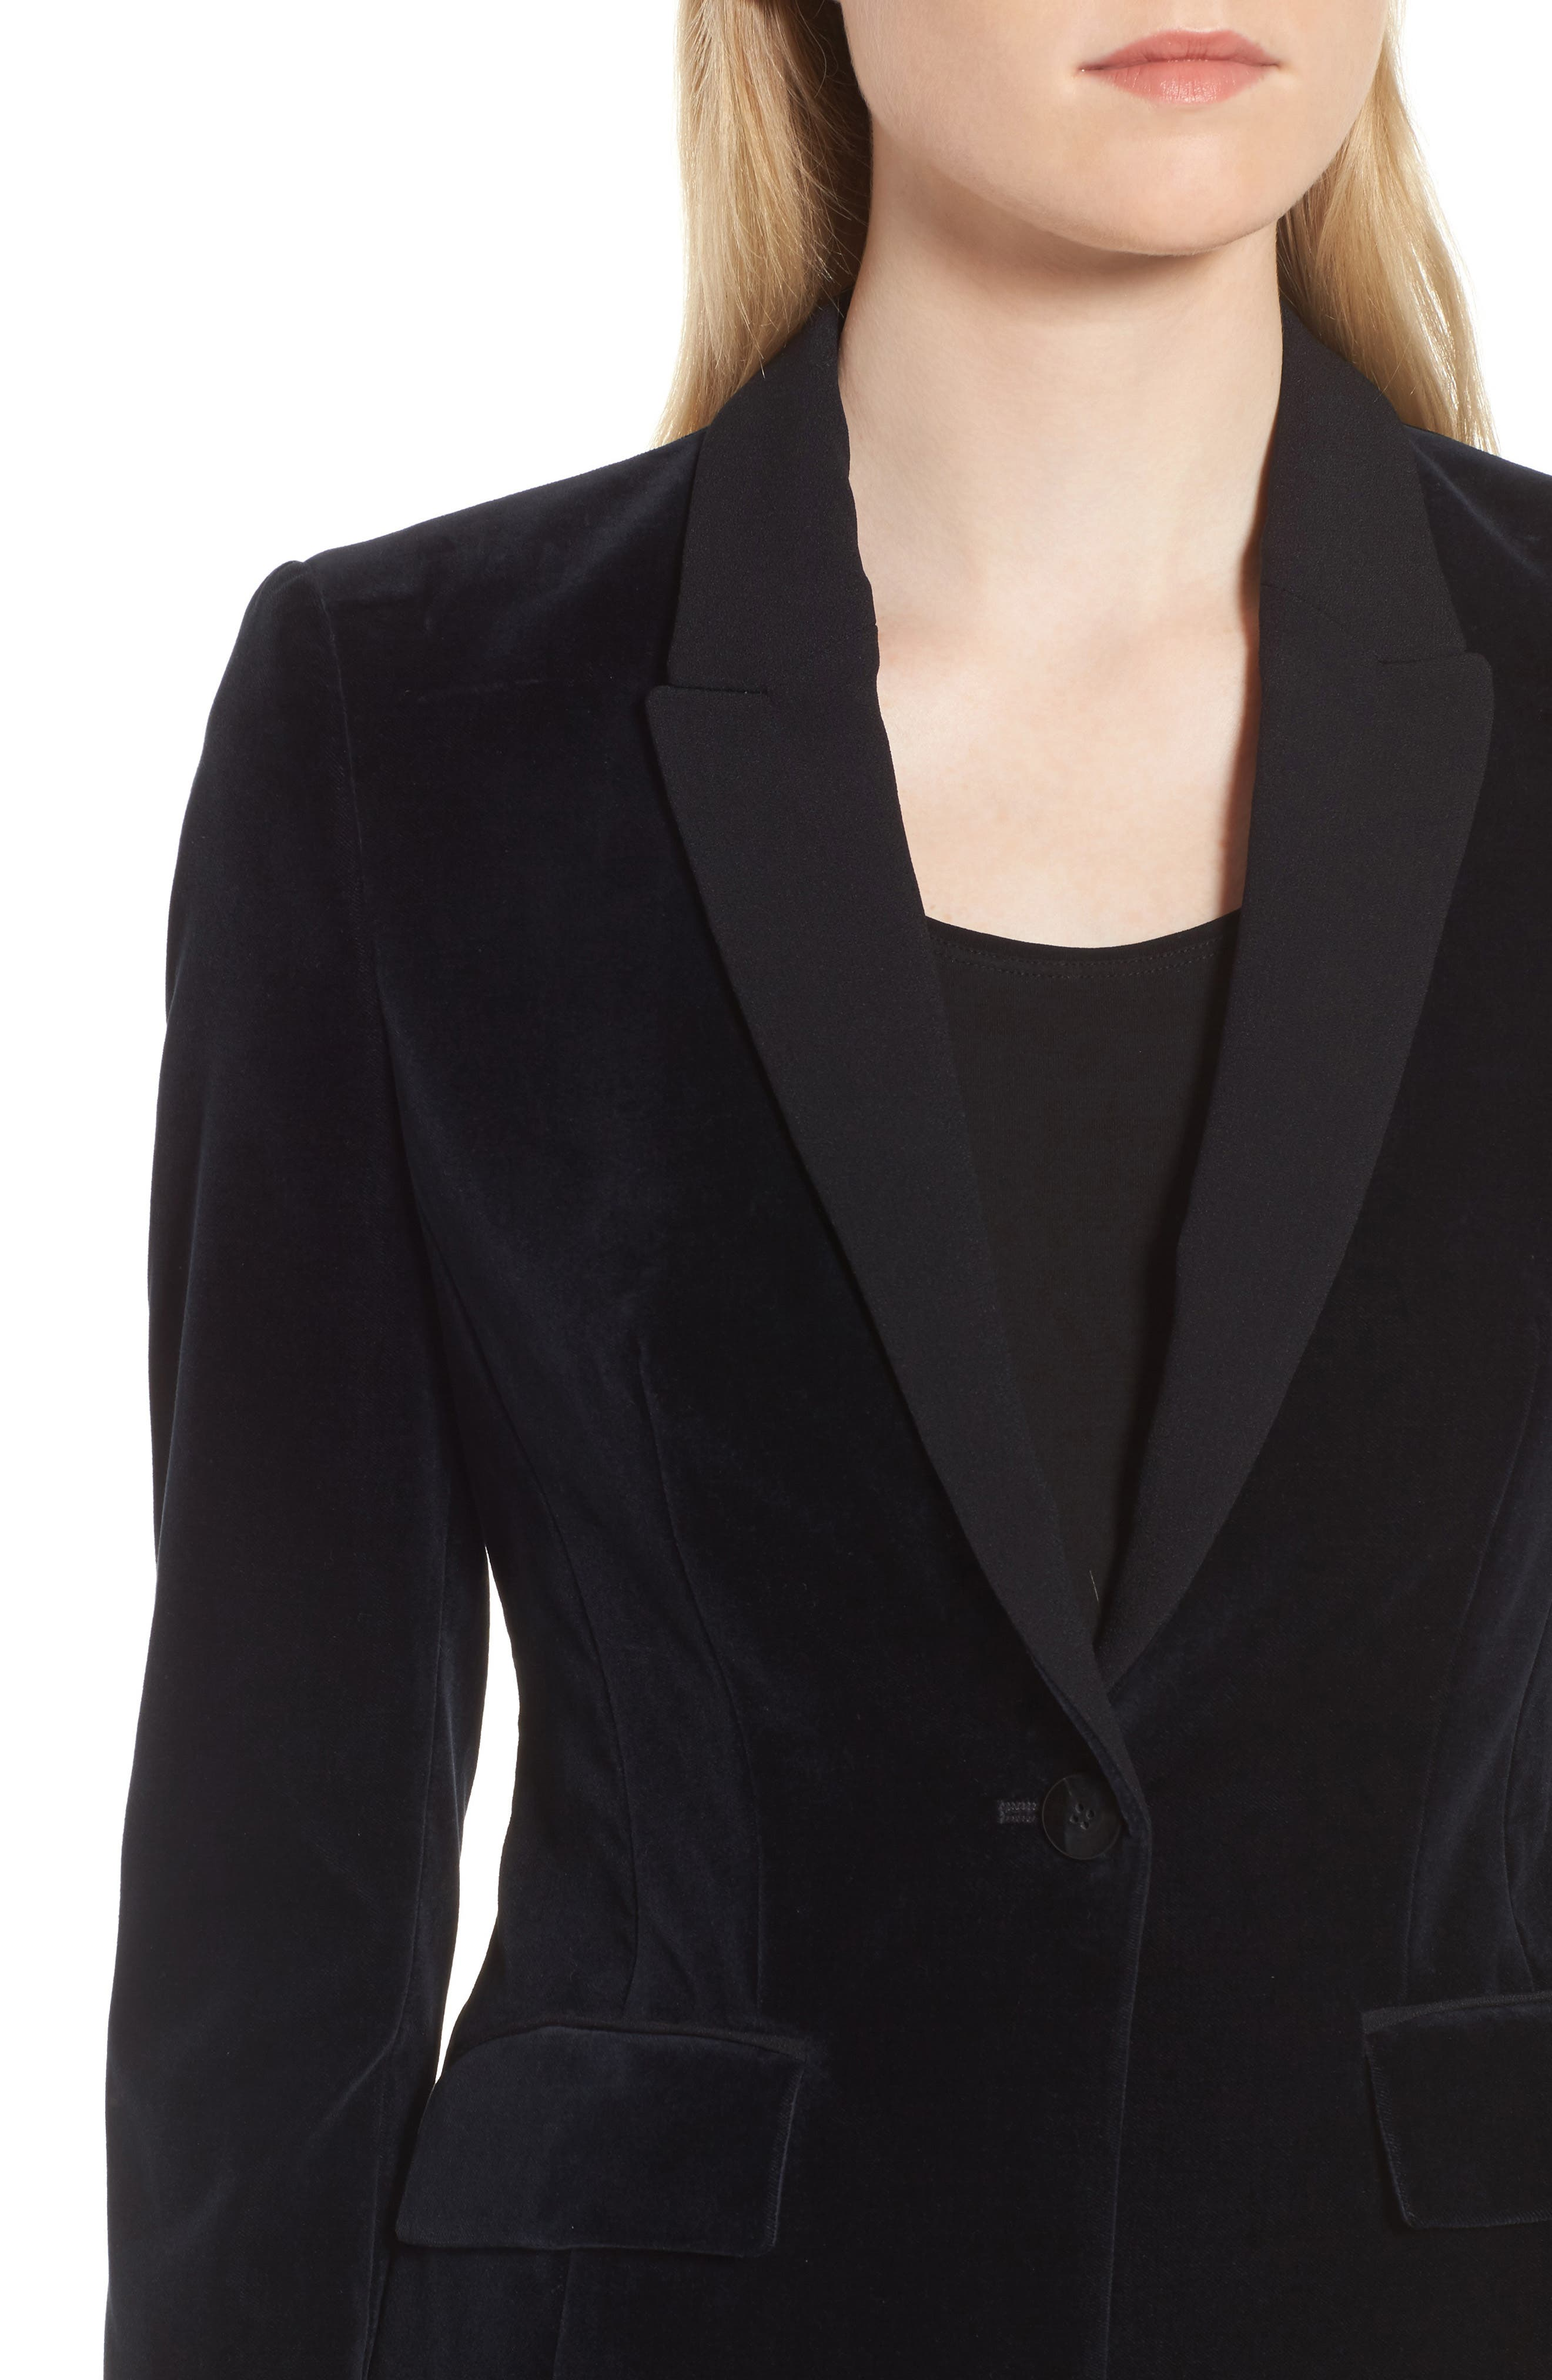 Jeronala Velvet Tuxedo Jacket,                             Alternate thumbnail 4, color,                             Navy